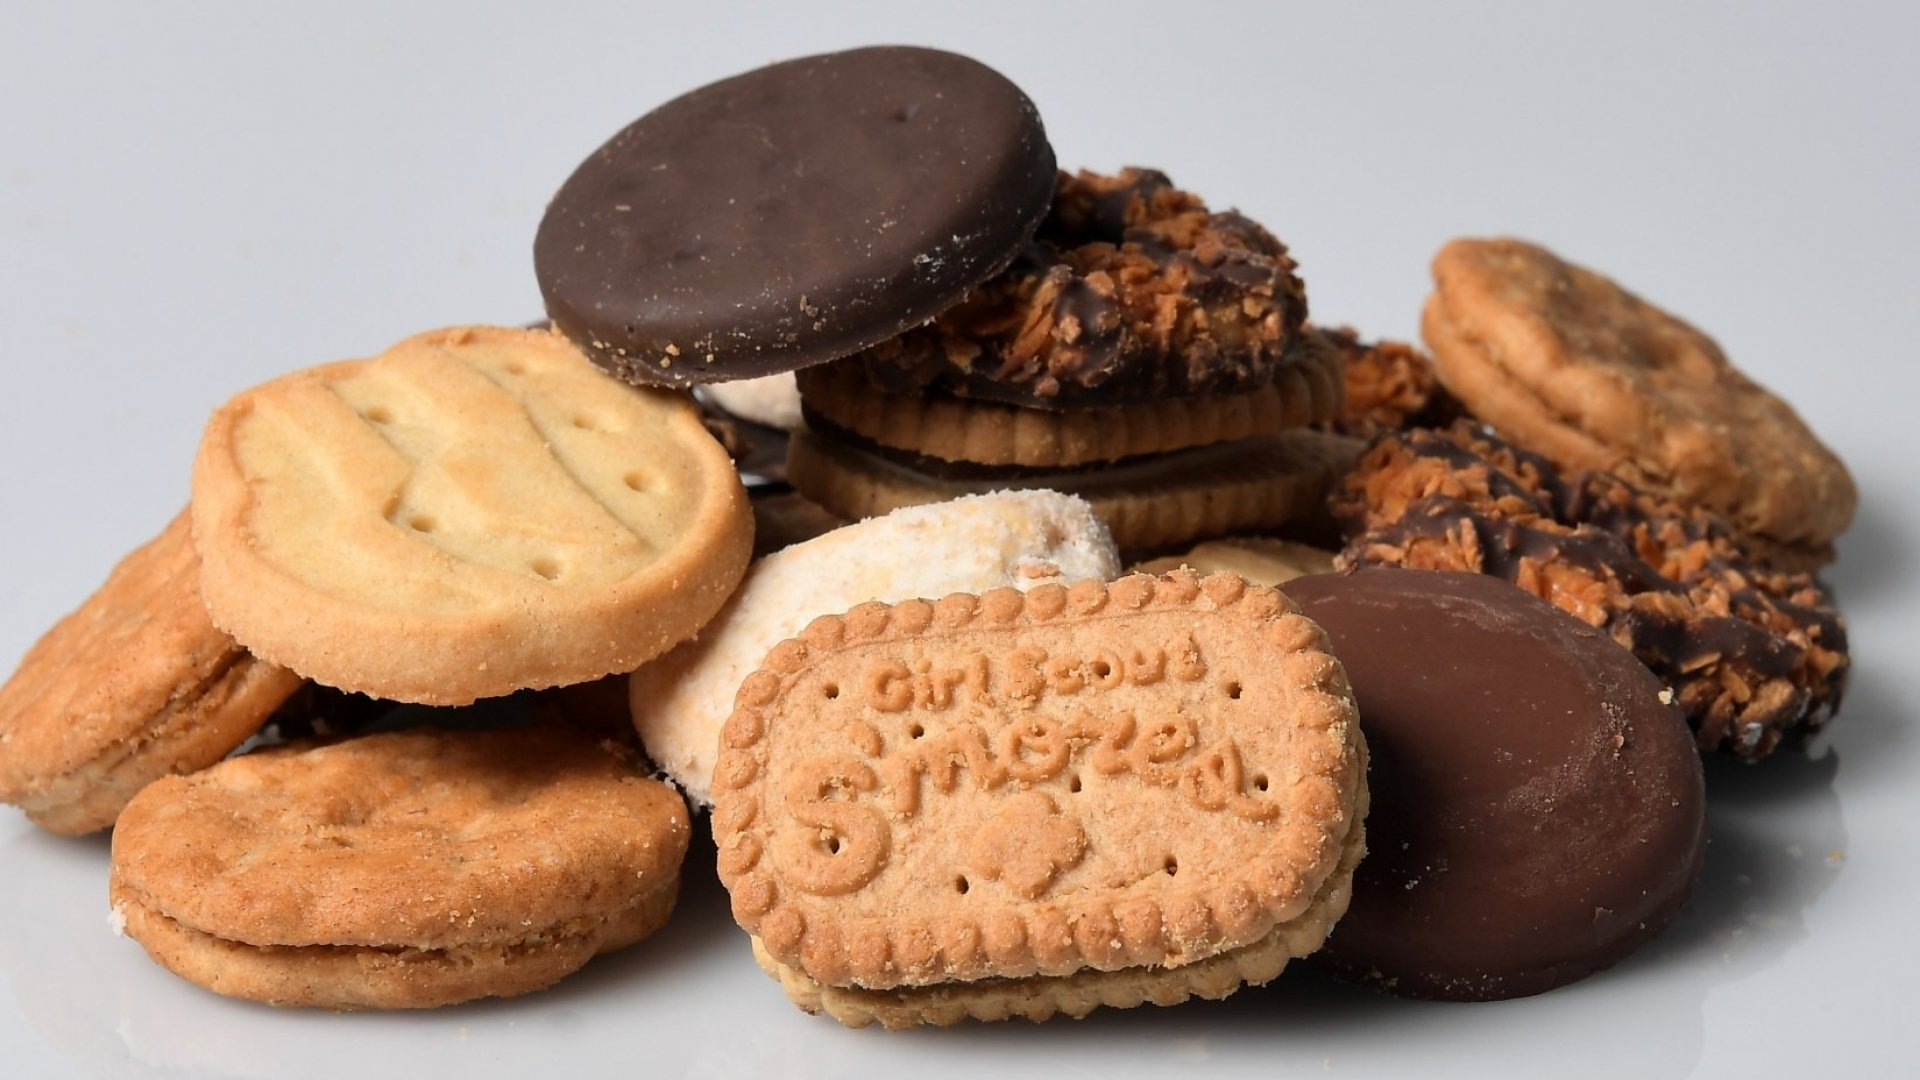 Really Smart Girl Scouts SellCookies Outside Marijuana Stores, Internet Reacts